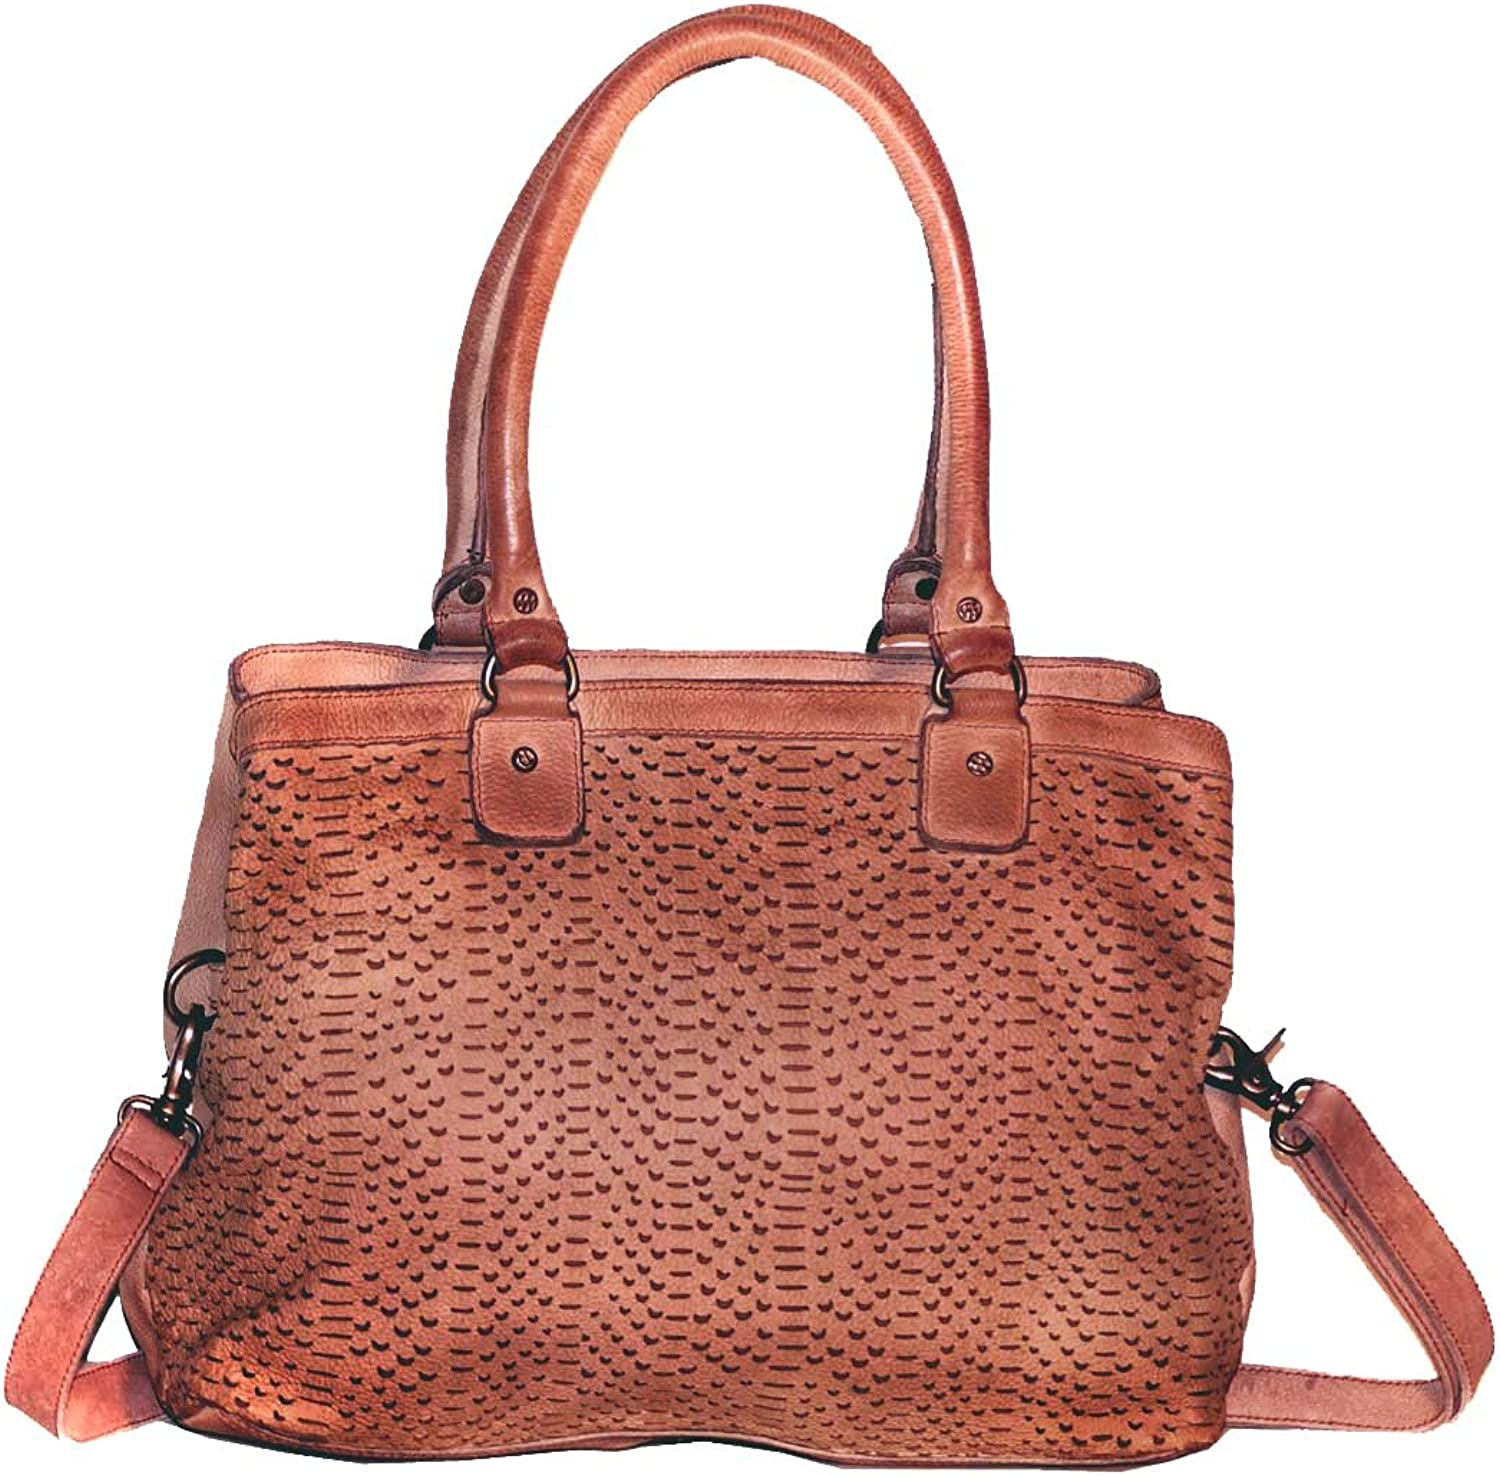 Amero Women's Baguette Leather Bag